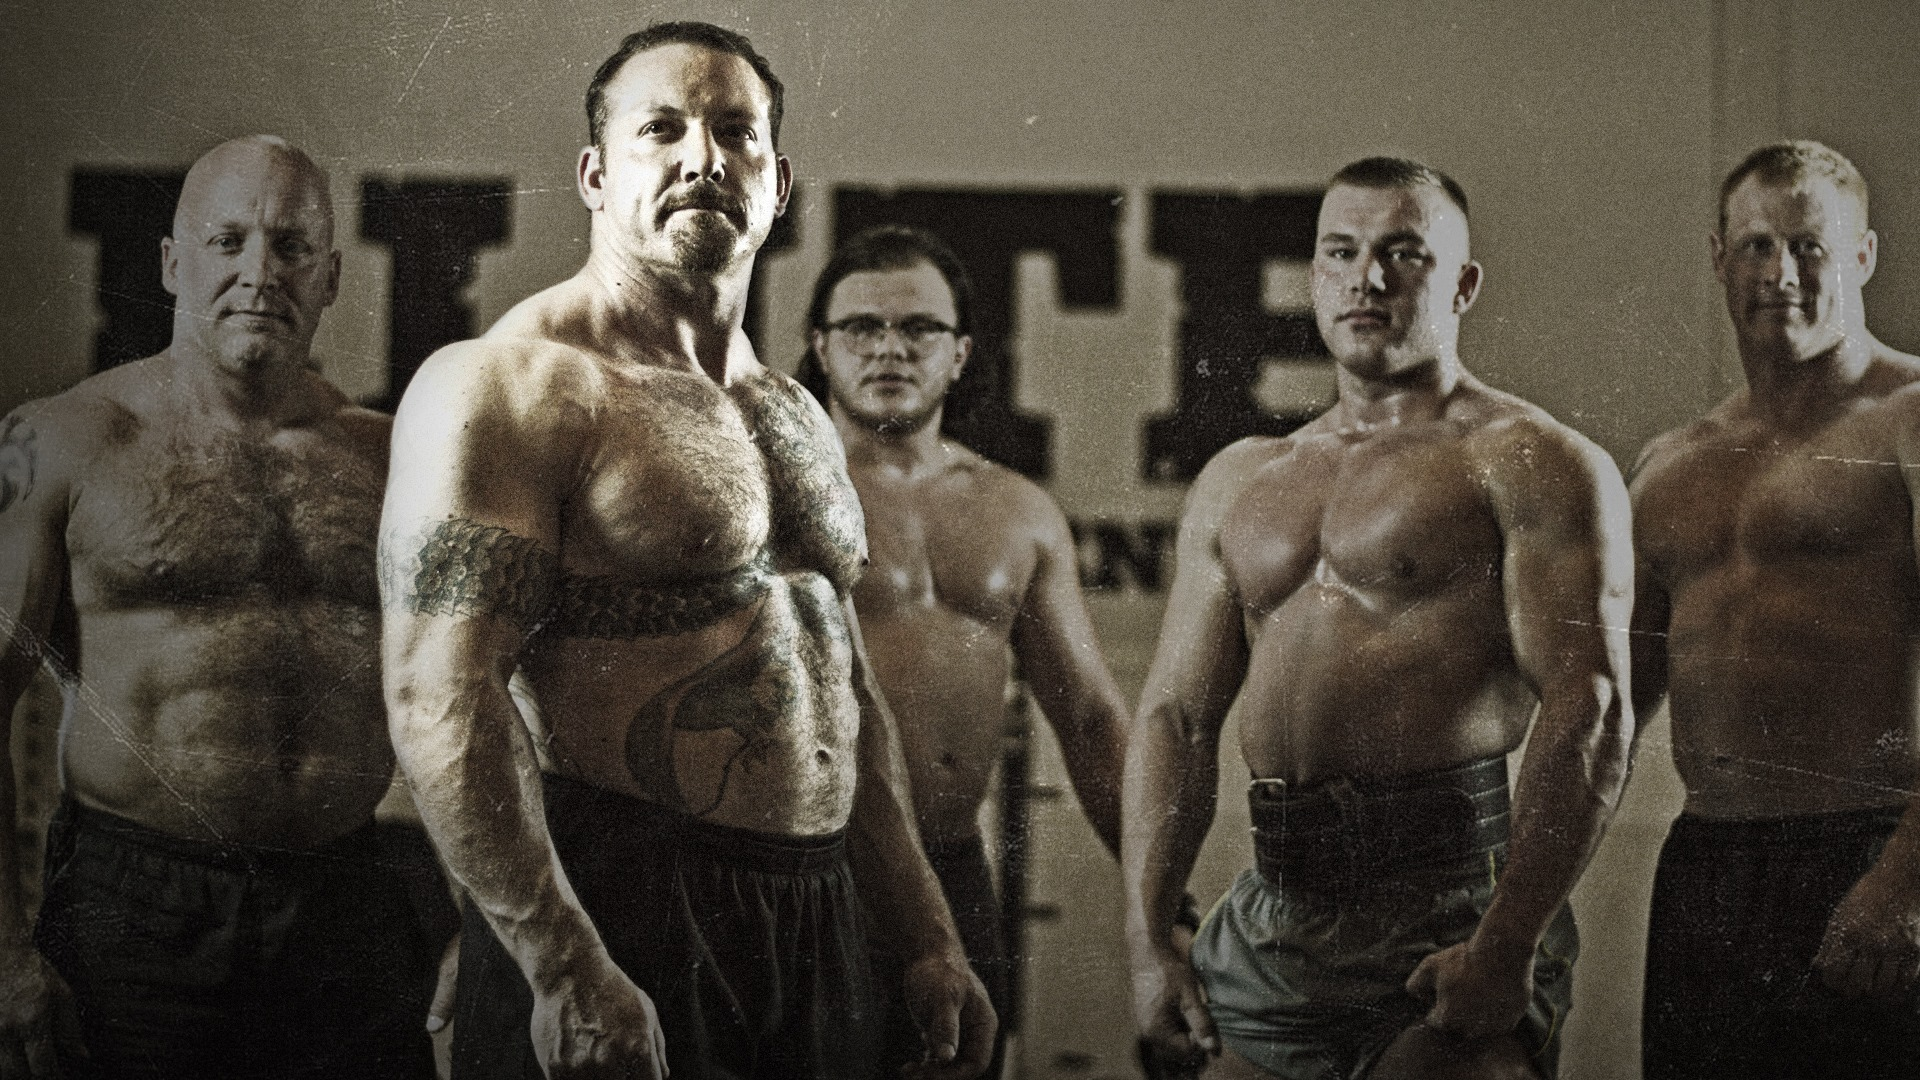 Group of men with great physique.